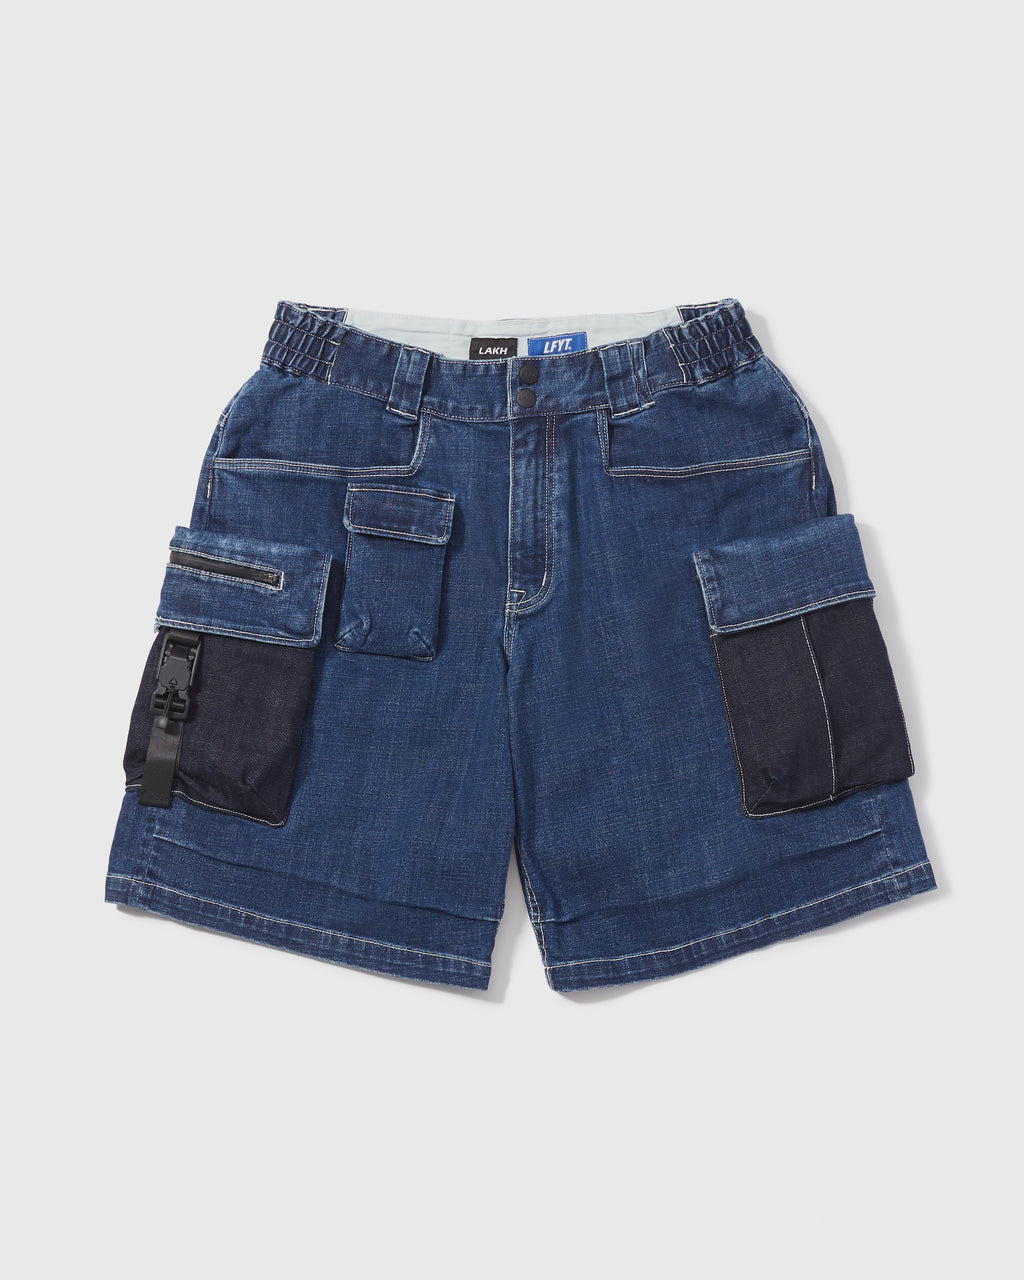 LAKH X LFYT Ten Pockets Cargo Shorts - Sky Blue